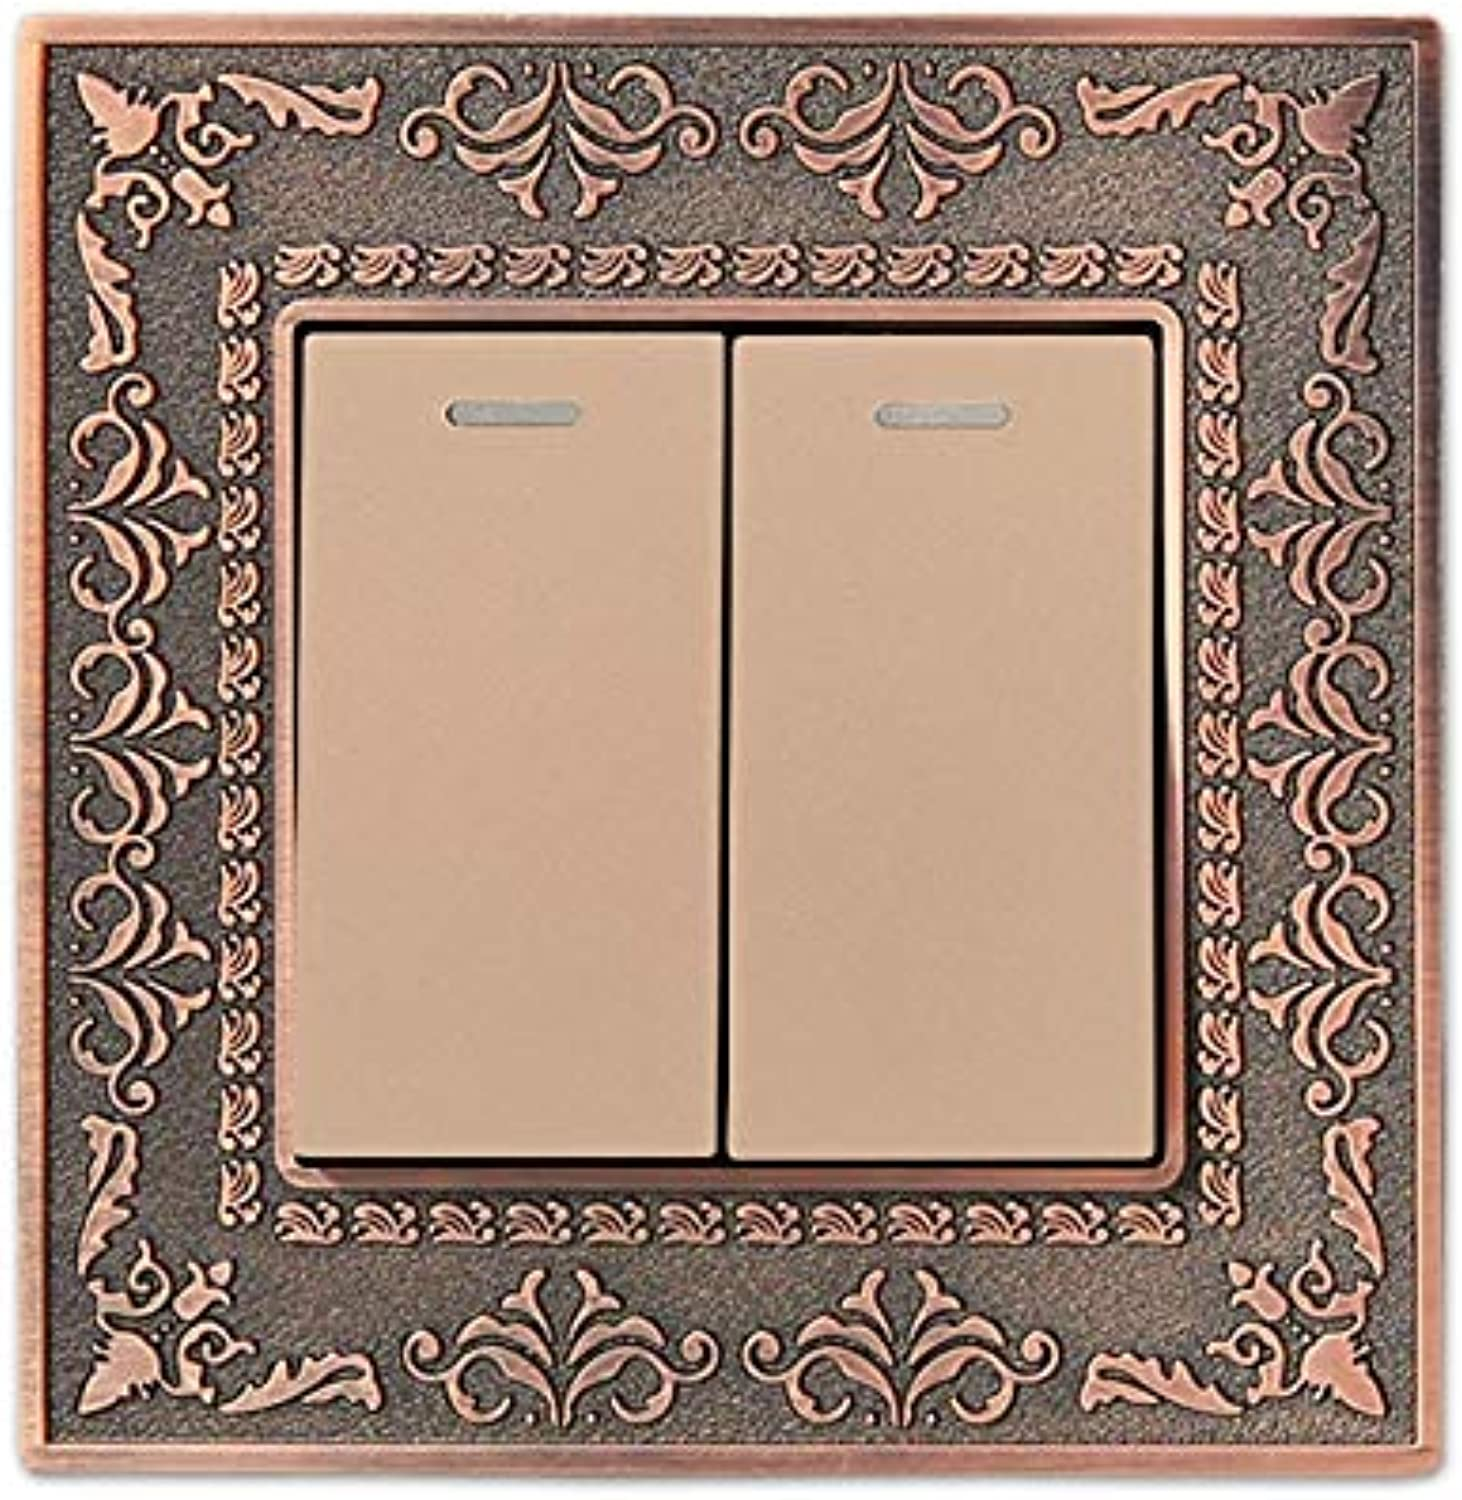 Wall Switch 2 Gang 1 Way, 86 Antique Copper Carved Zinc Alloy Switch Panel, 10A AC110250V